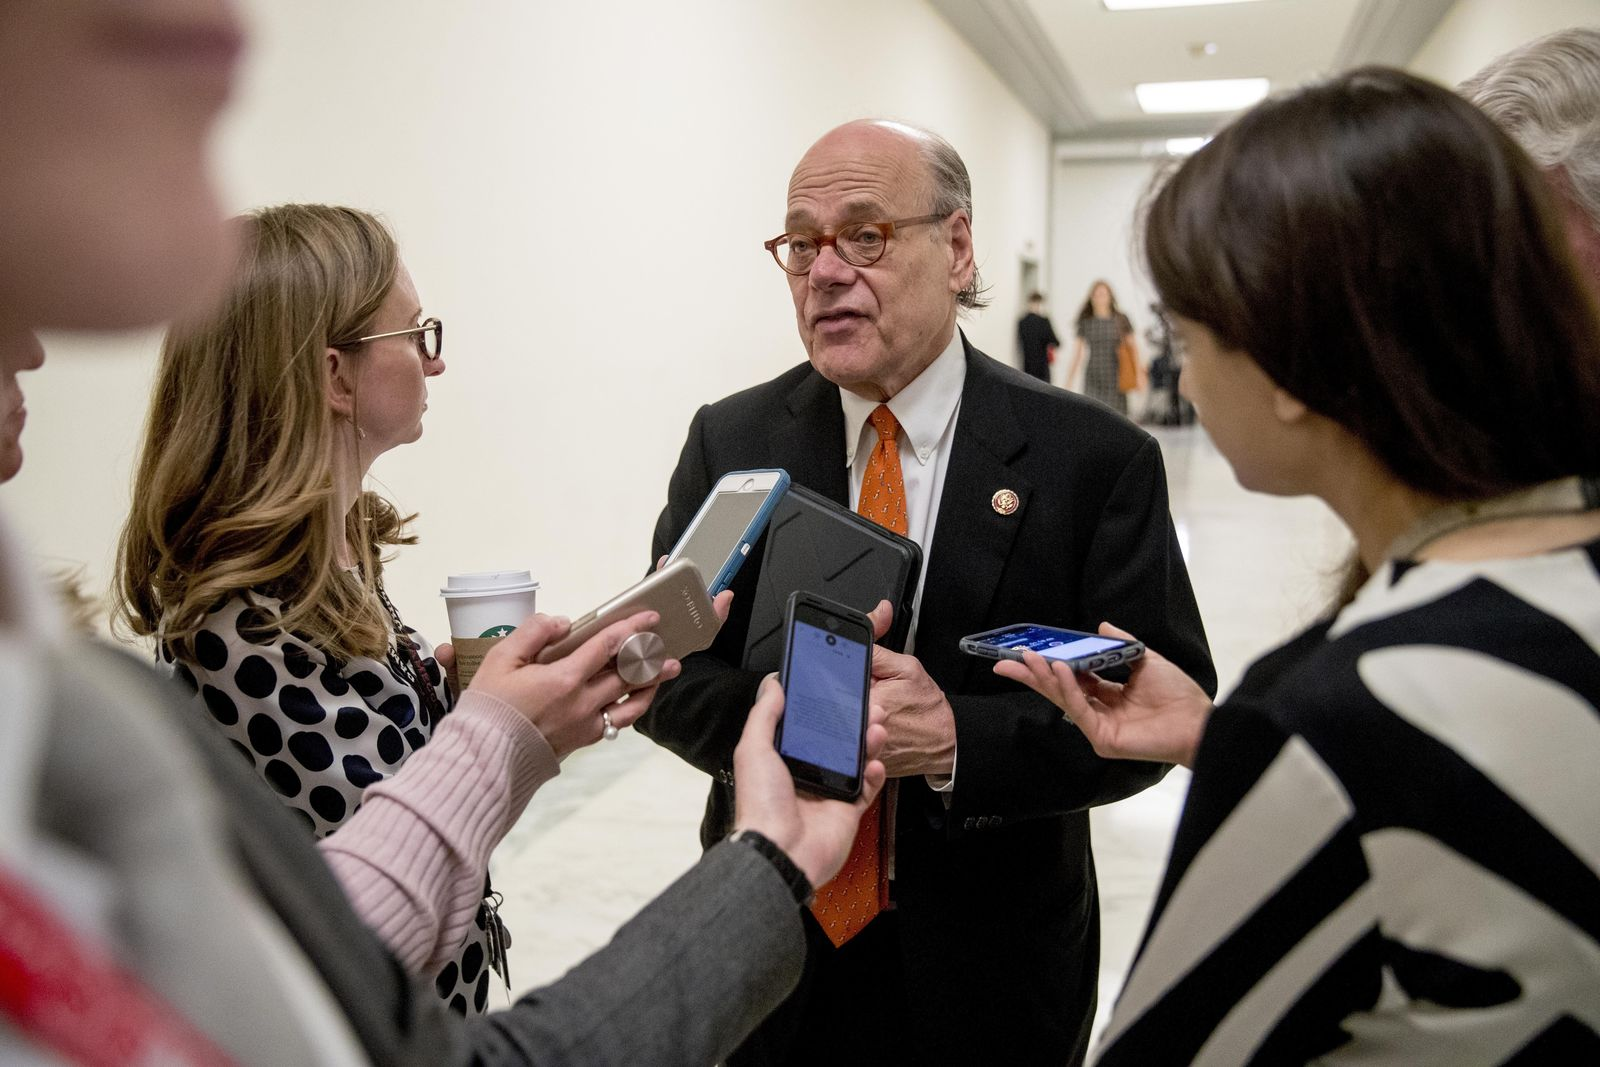 Rep. Steve Cohen, D-Tenn., speaks to reporters following a House Judiciary Committee hearing without former White House Counsel Don McGahn, who was a key figure in special counsel Robert Mueller's investigation, on Capitol Hill in Washington, Tuesday, May 21, 2019. President Donald Trump directed McGahn to defy a congressional subpoena to testify but the committee's chairman, Rep. Jerrold Nadler, D-N.Y., has threatened to hold McGahn in contempt of Congress if he doesn't appear. (AP Photo/Andrew Harnik)